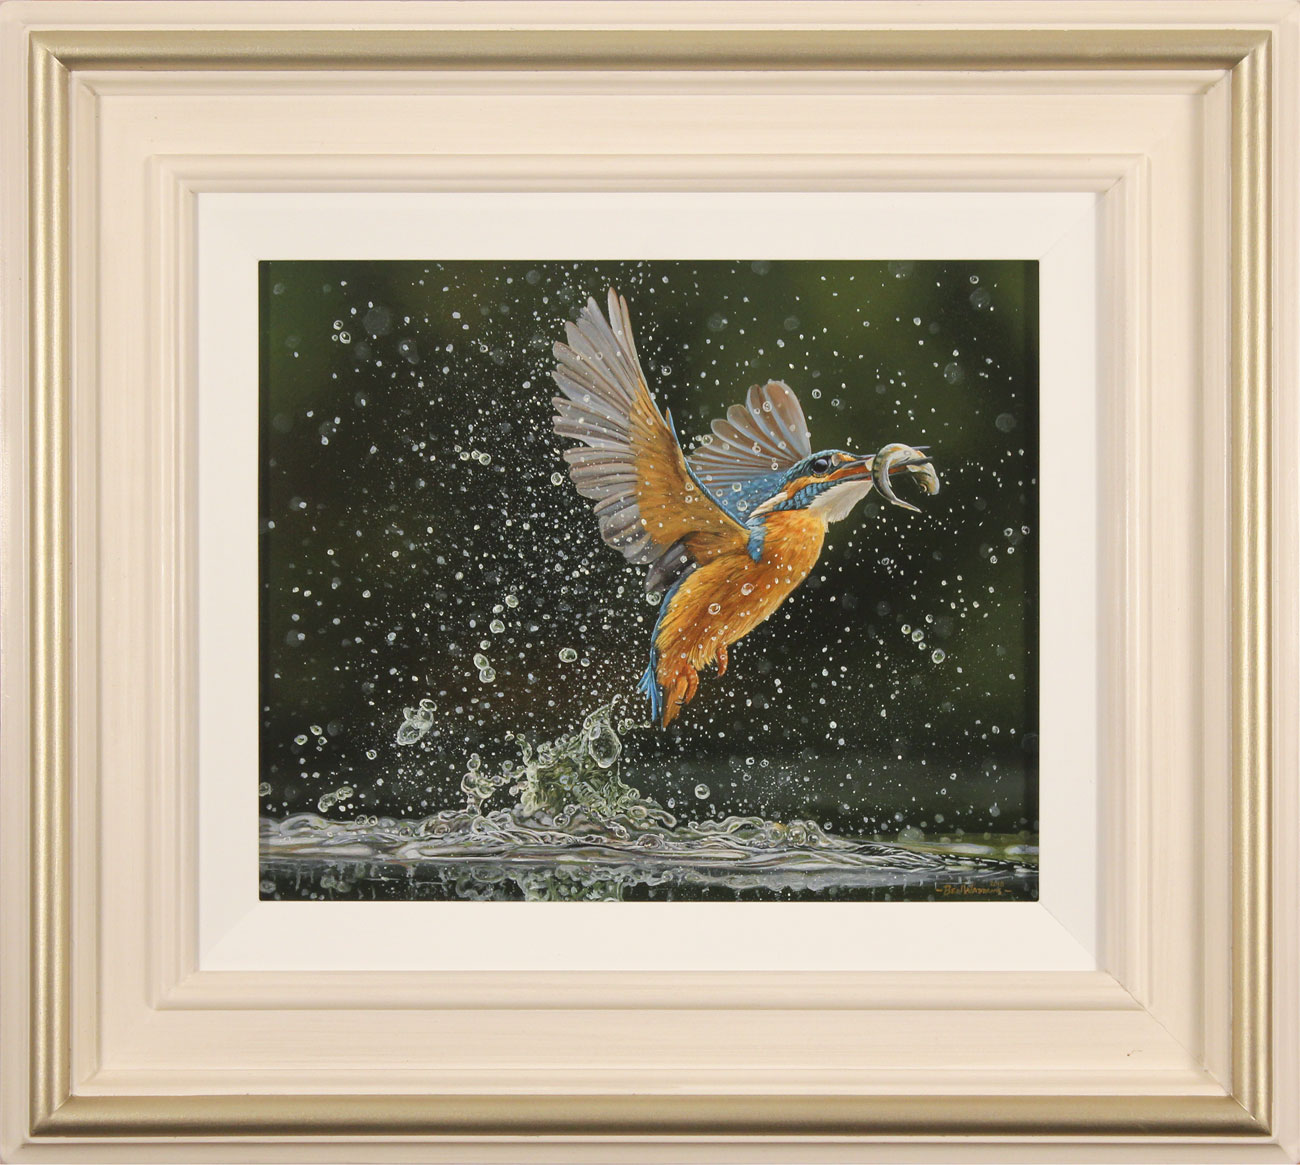 Ben Waddams, Original oil painting on panel, A Magnificent Catch. Click to enlarge